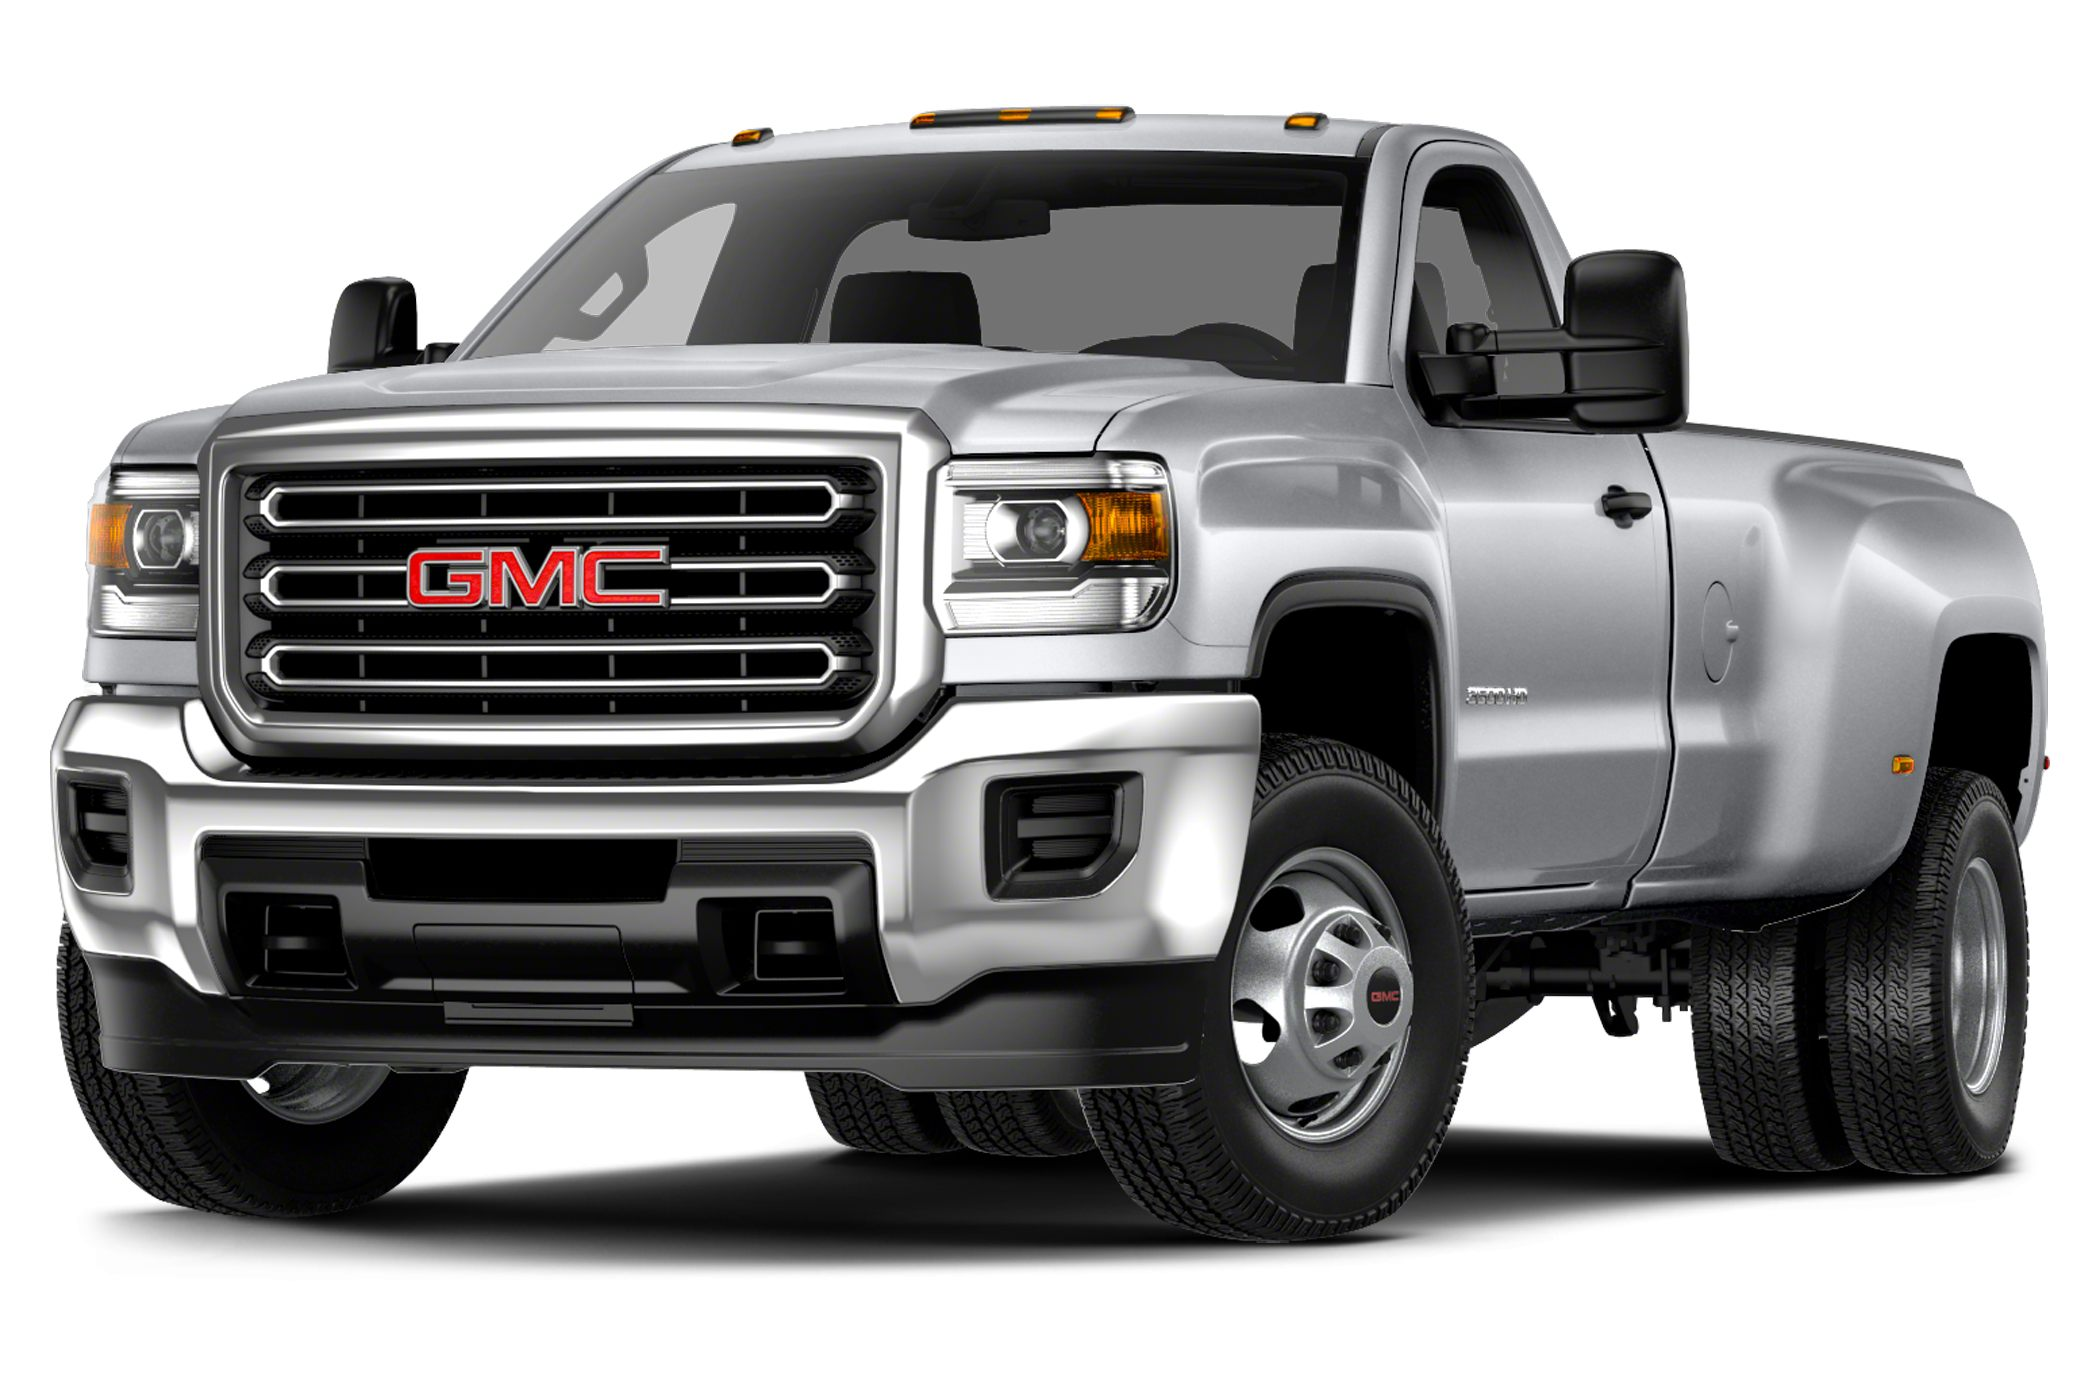 GMC Sierra 3500HD News, Photos and Buying Information ...